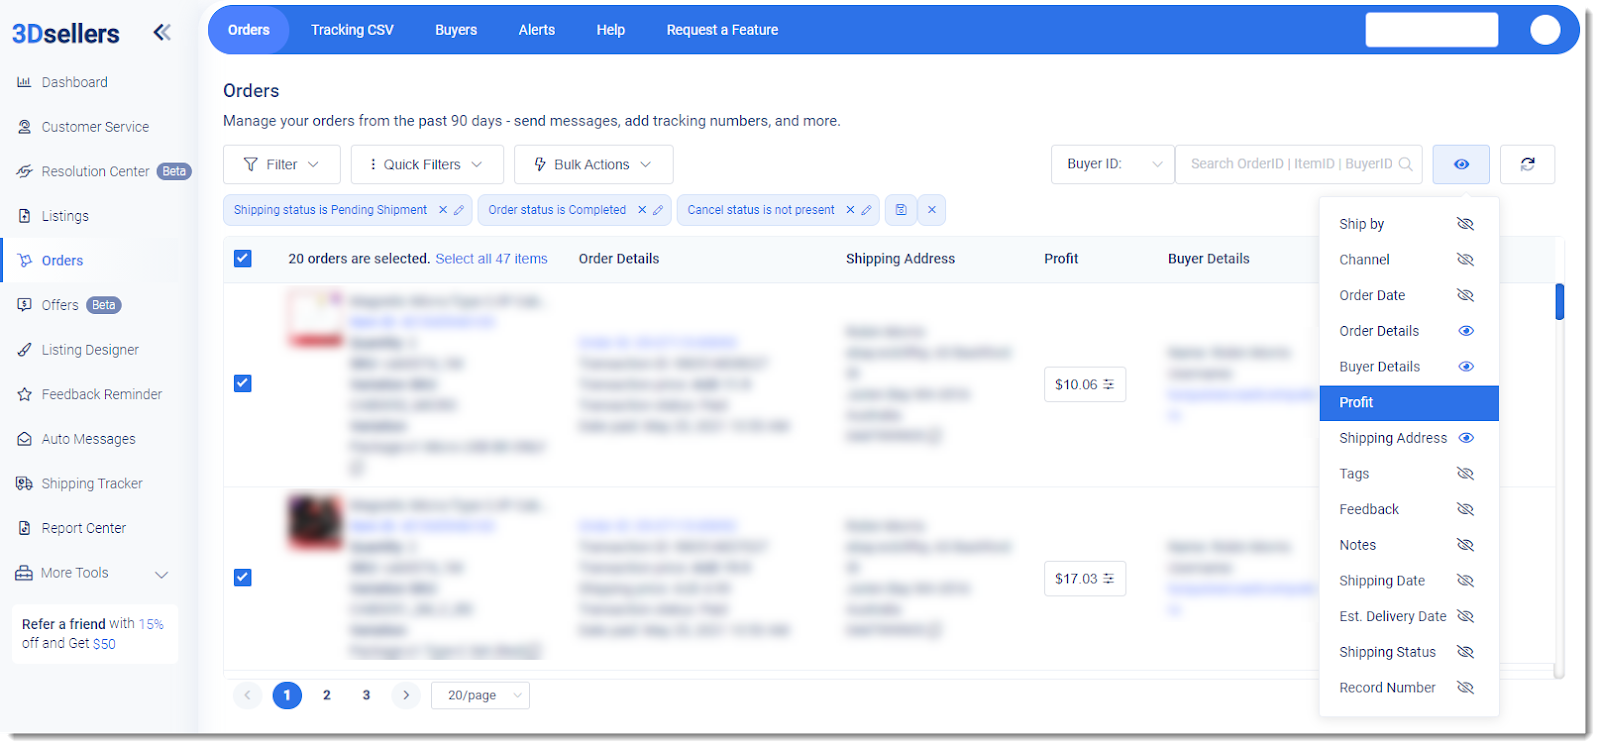 3Dsellers orders manager tool dashboard